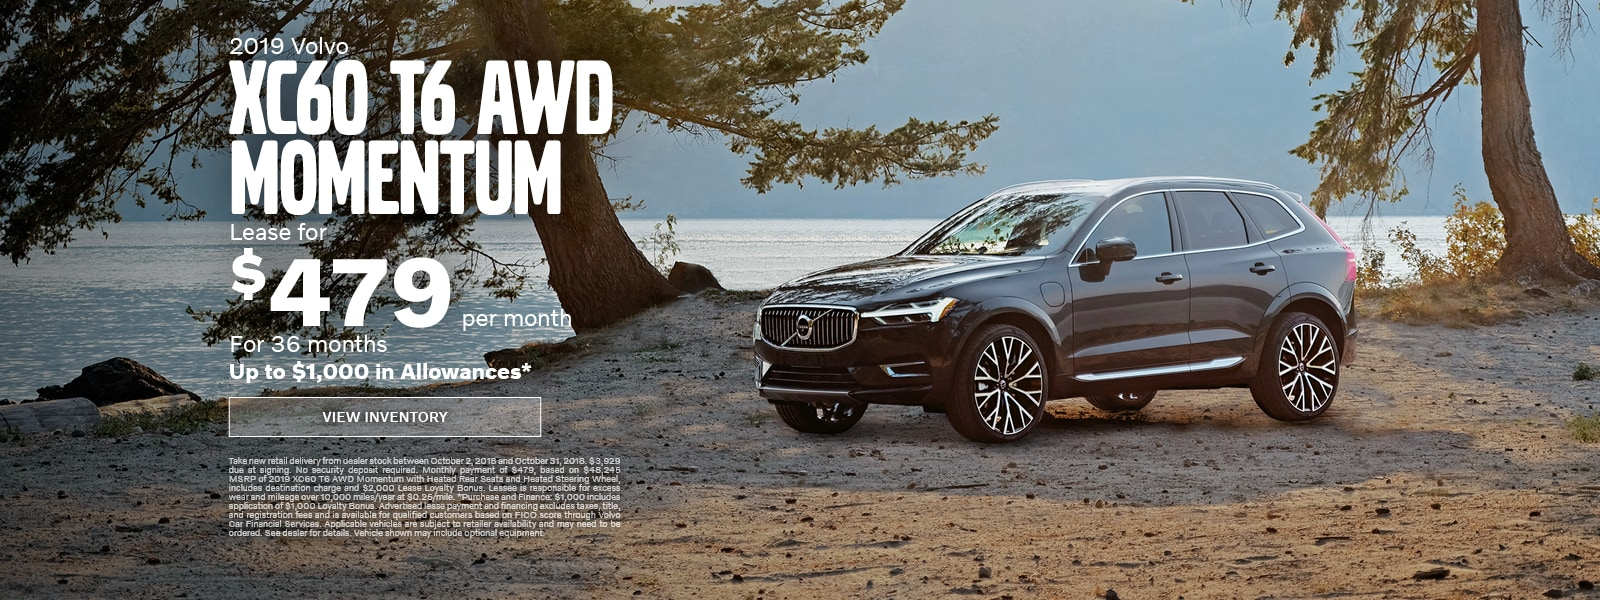 new volvo used car dealer in hyannis ma volvo cars cape cod. Black Bedroom Furniture Sets. Home Design Ideas